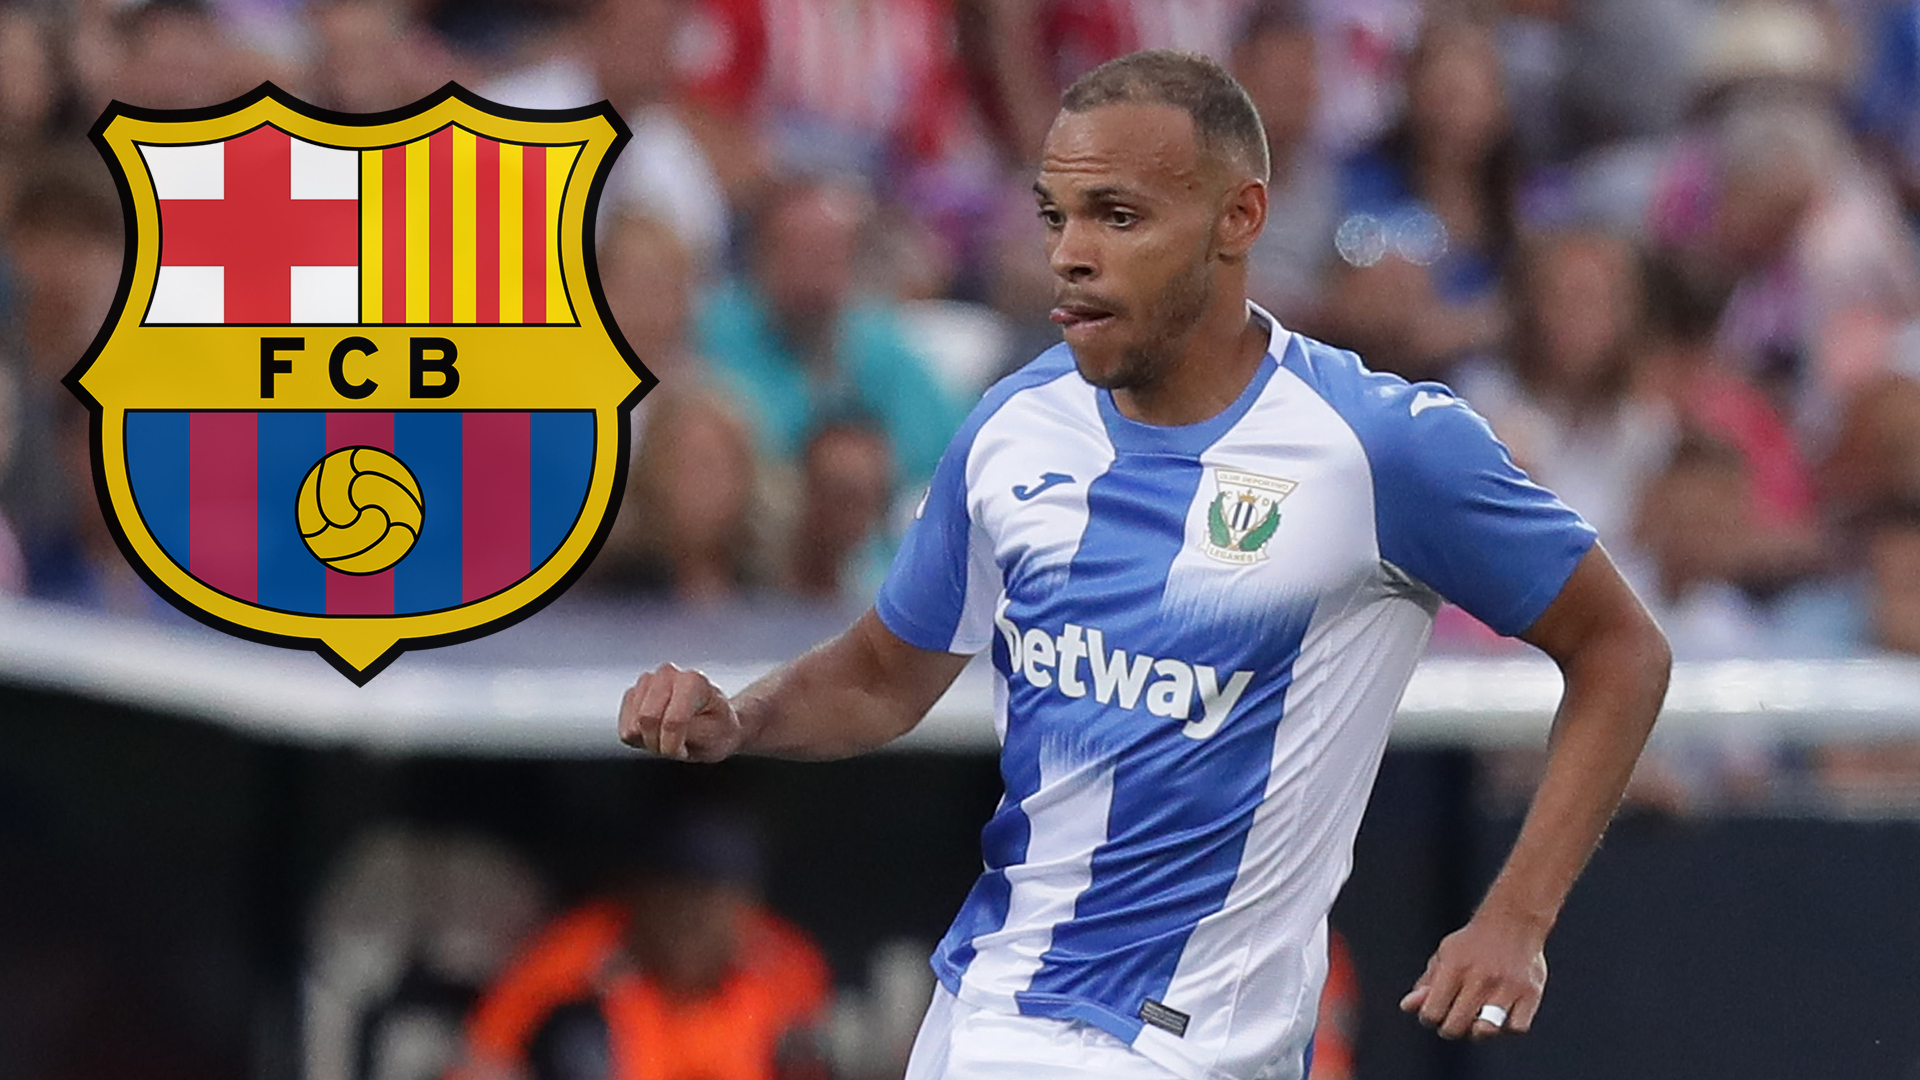 Barcelona sign Braithwaite outside transfer window